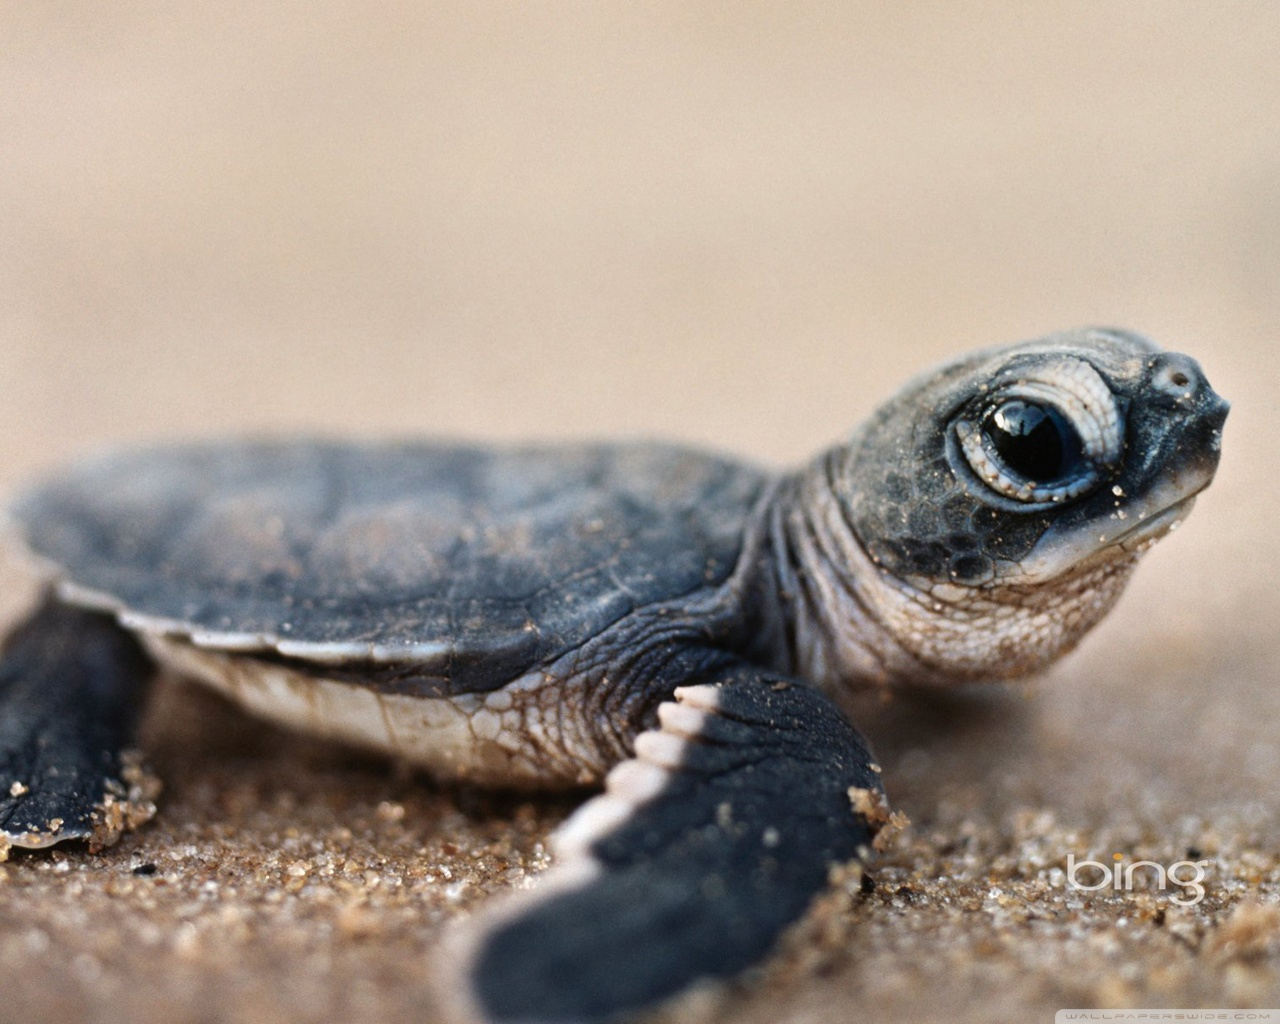 Nature Animals Baby Turtle Desktop Wallpaper Scroll Wallpapers 1280x1024